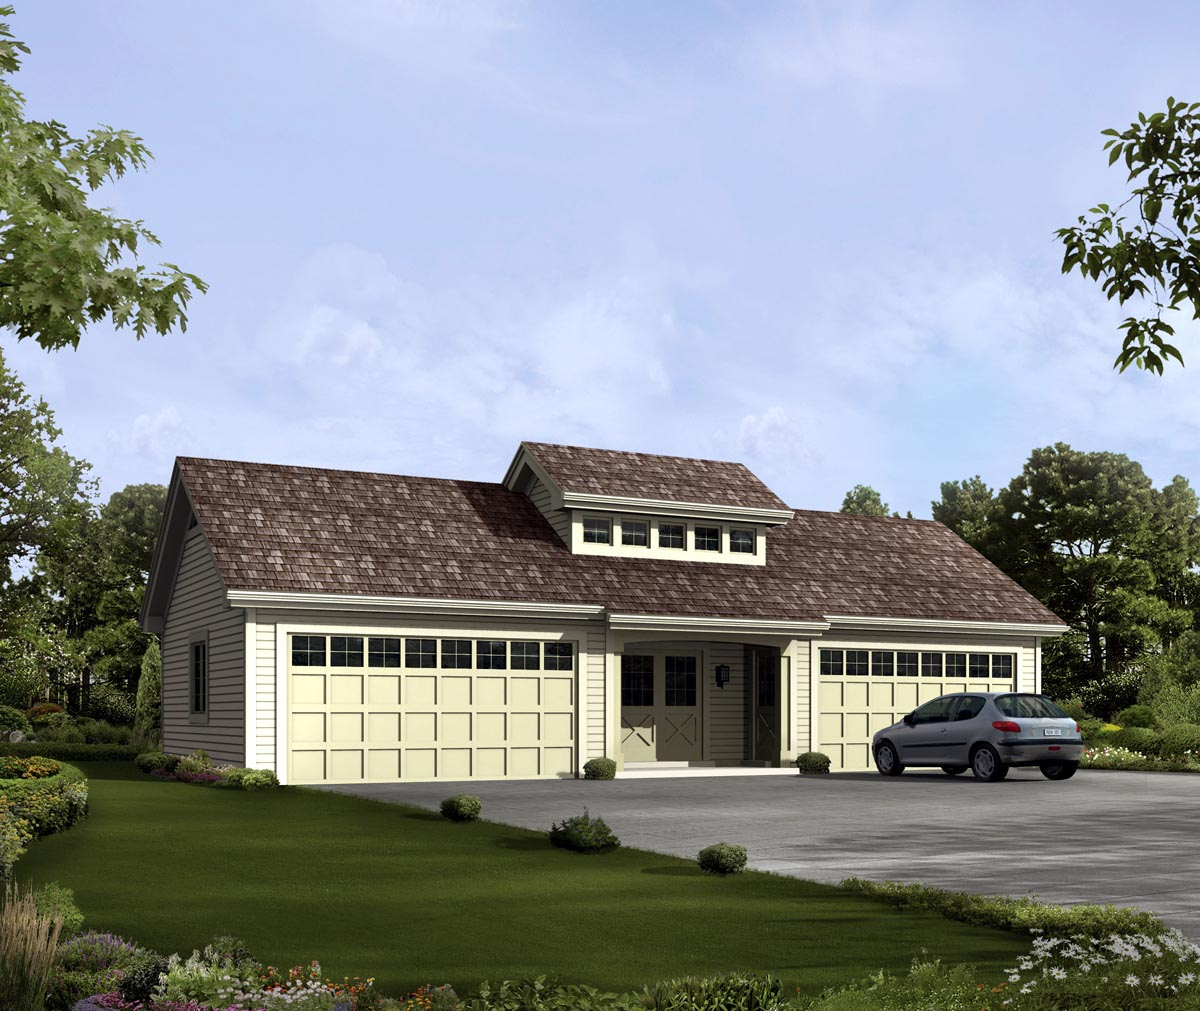 Garage Plan 95826 At Familyhomeplans Com: Garage Plan 95919 At FamilyHomePlans.com